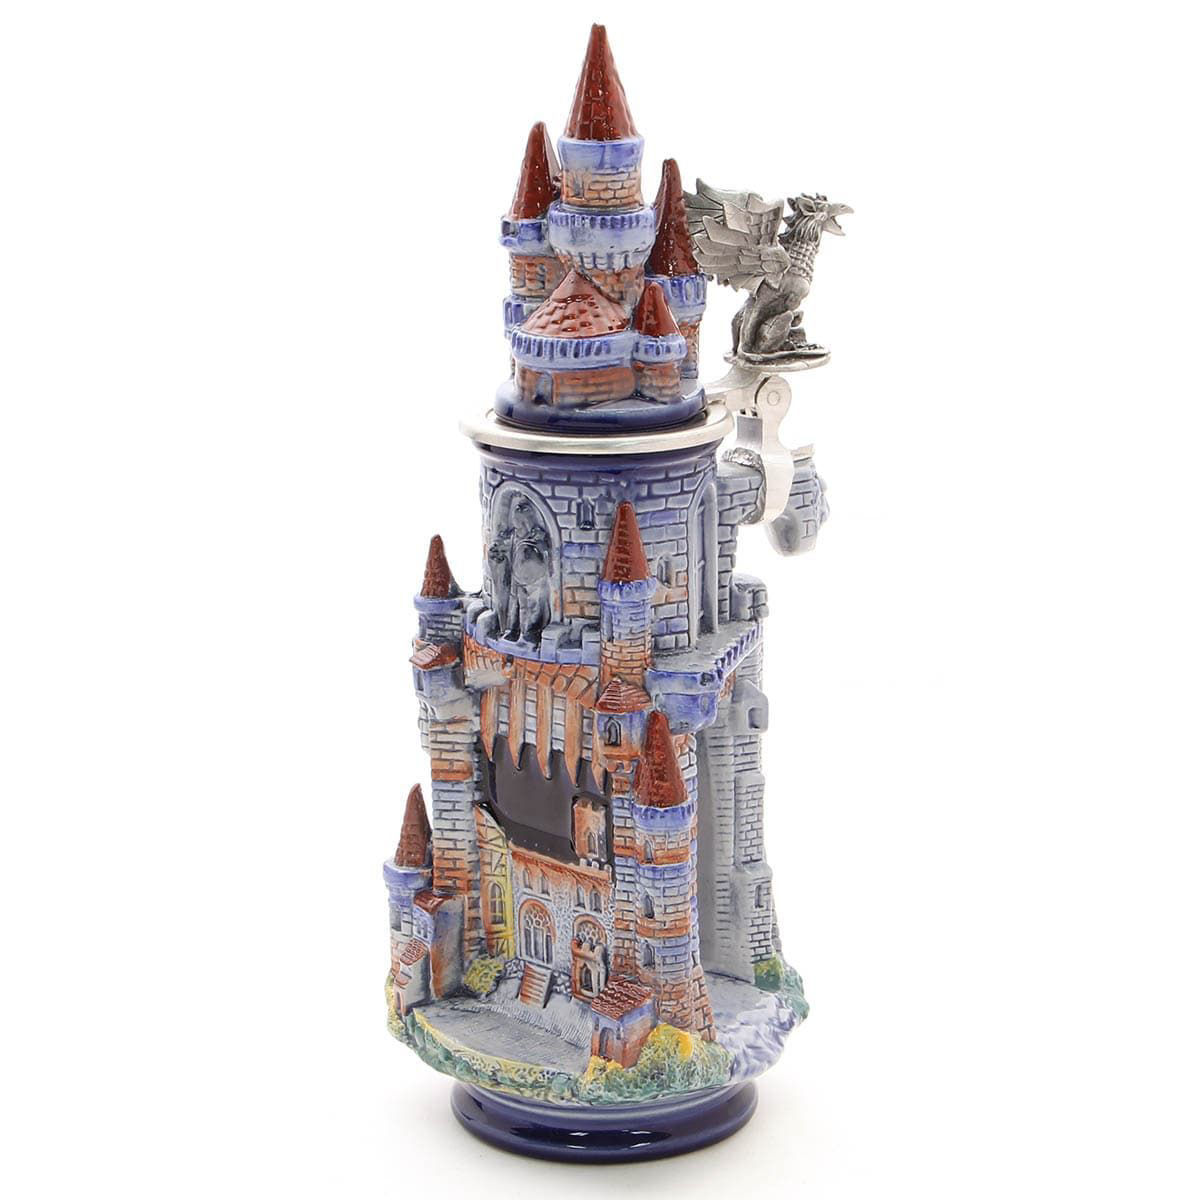 Limited edition stoneware fantasy castle stein with towers, gates, masonry, and cobblestone roads is made in Germany.